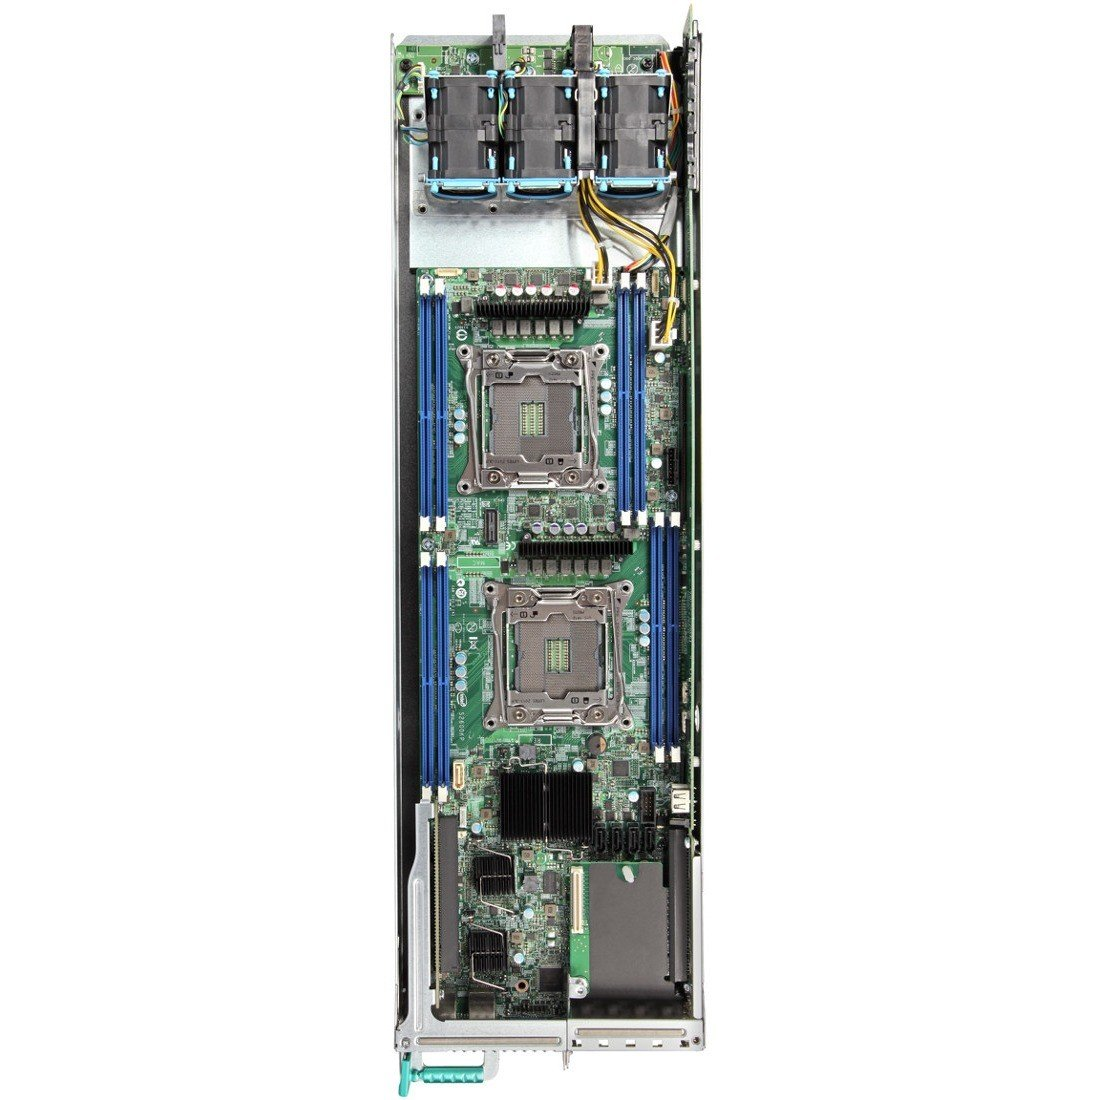 Intel HNS2600KPR Barebone System - 1U Rack-mountable - In...